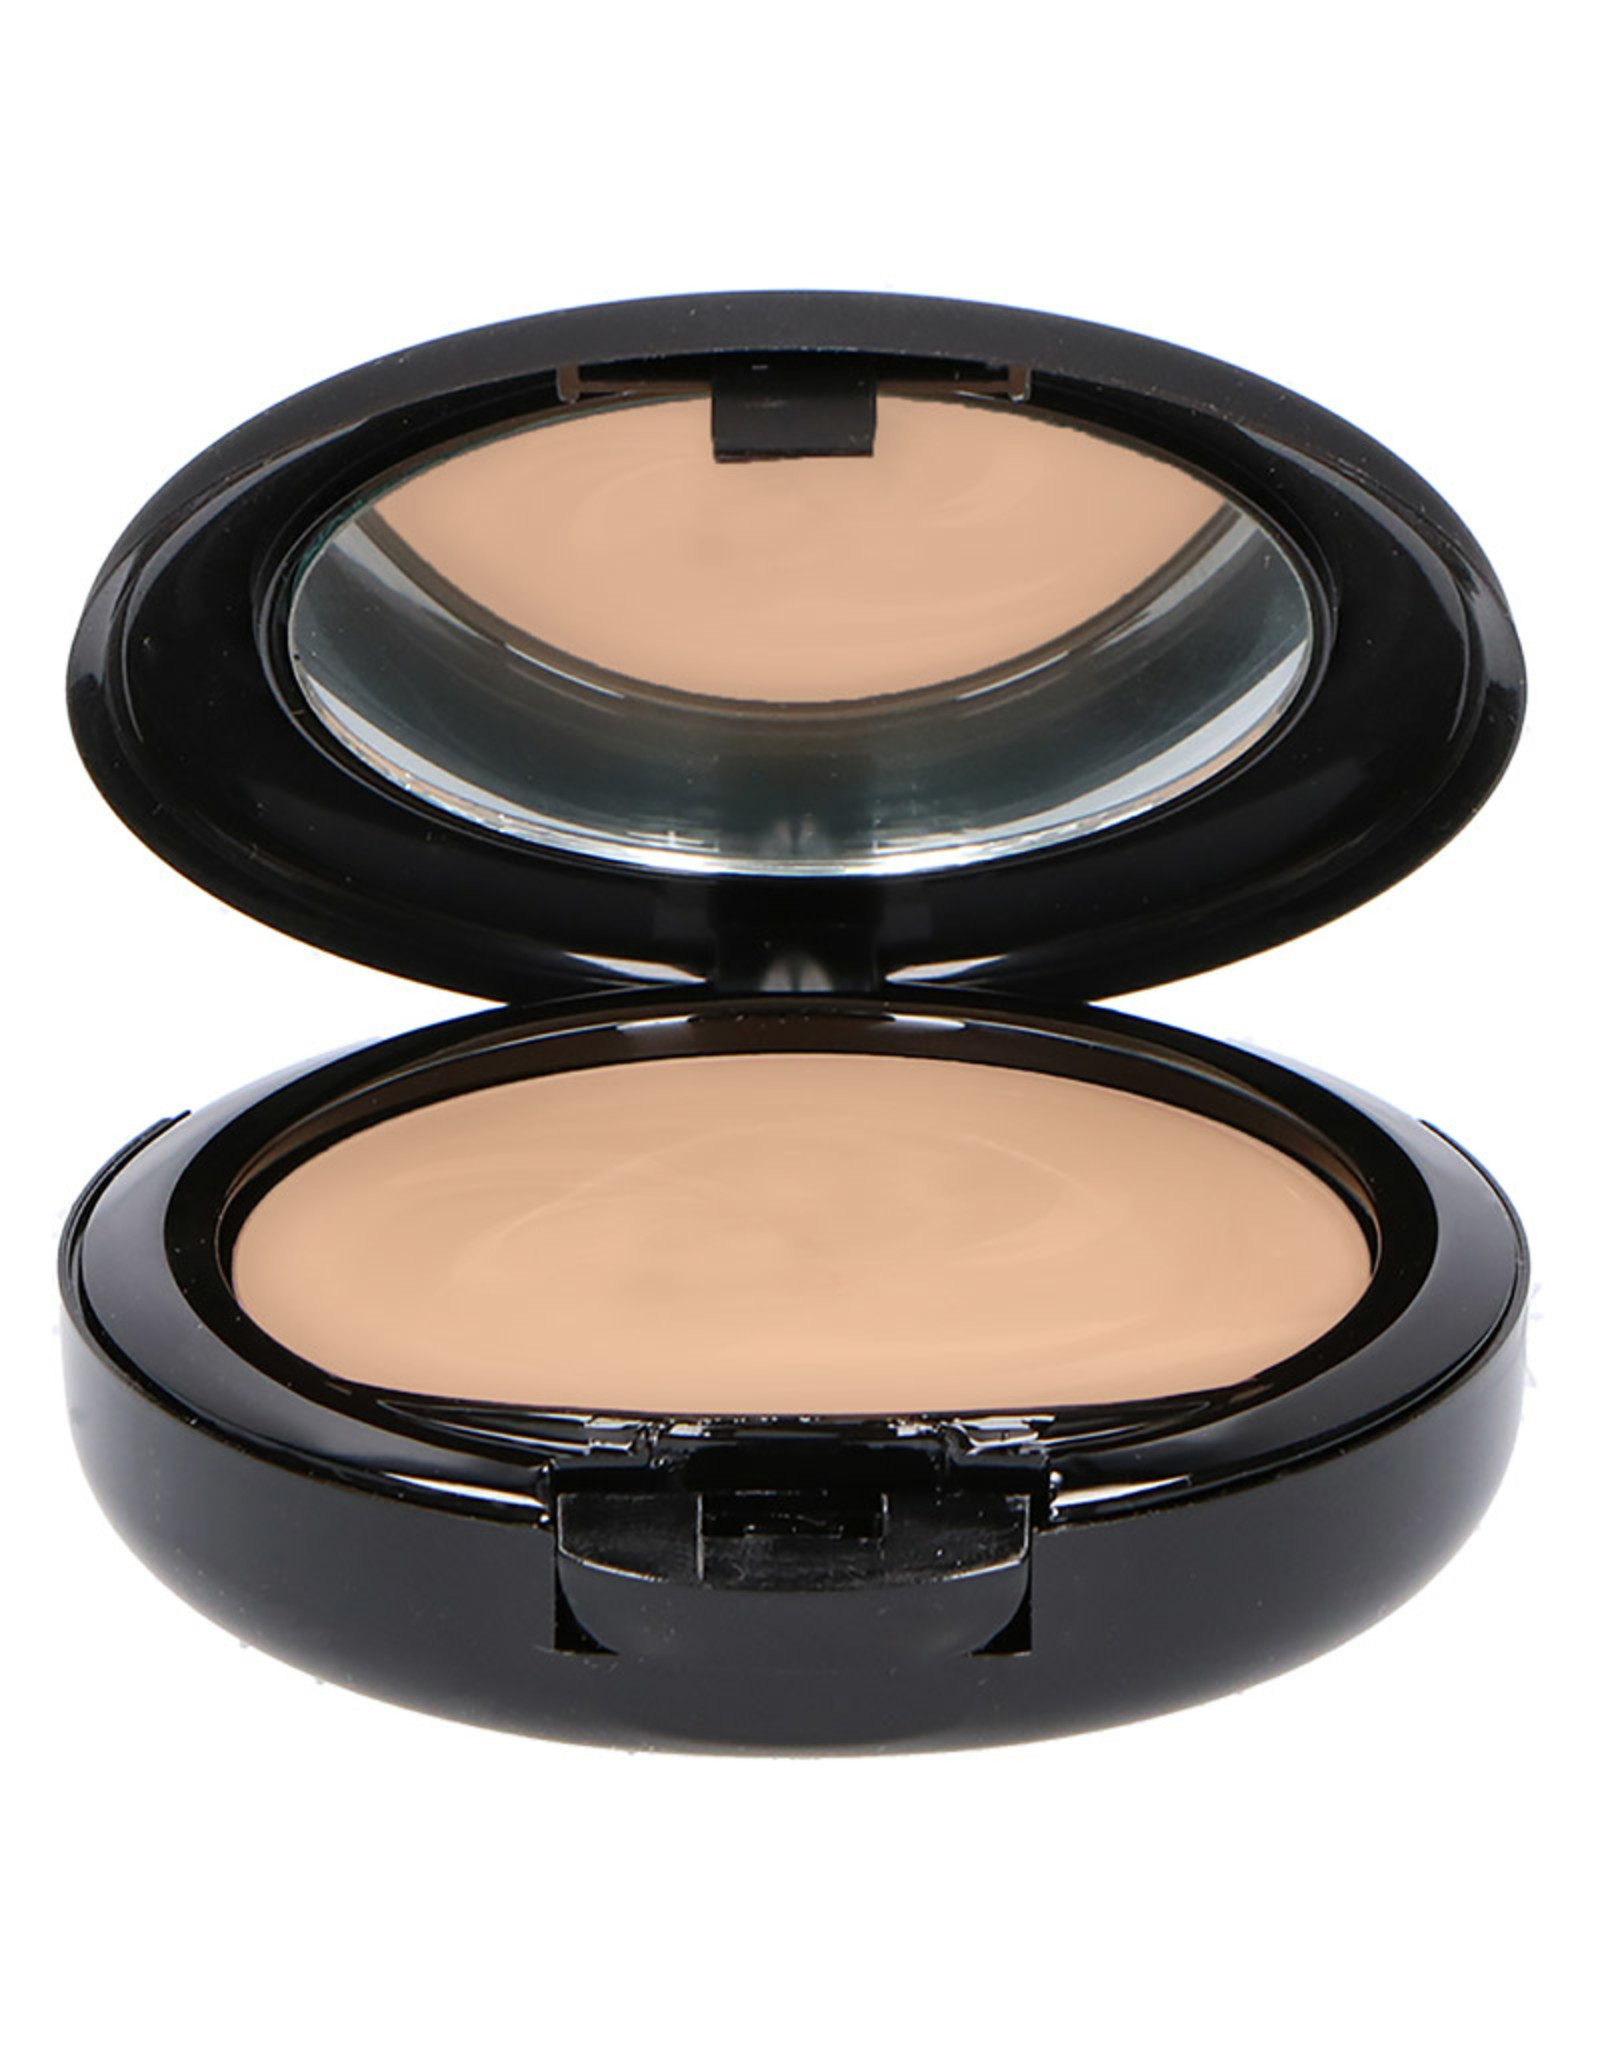 MAKE-UP STUDIO LIGHT VELVET FOUNDATION WB3 NATURAL BEIGE